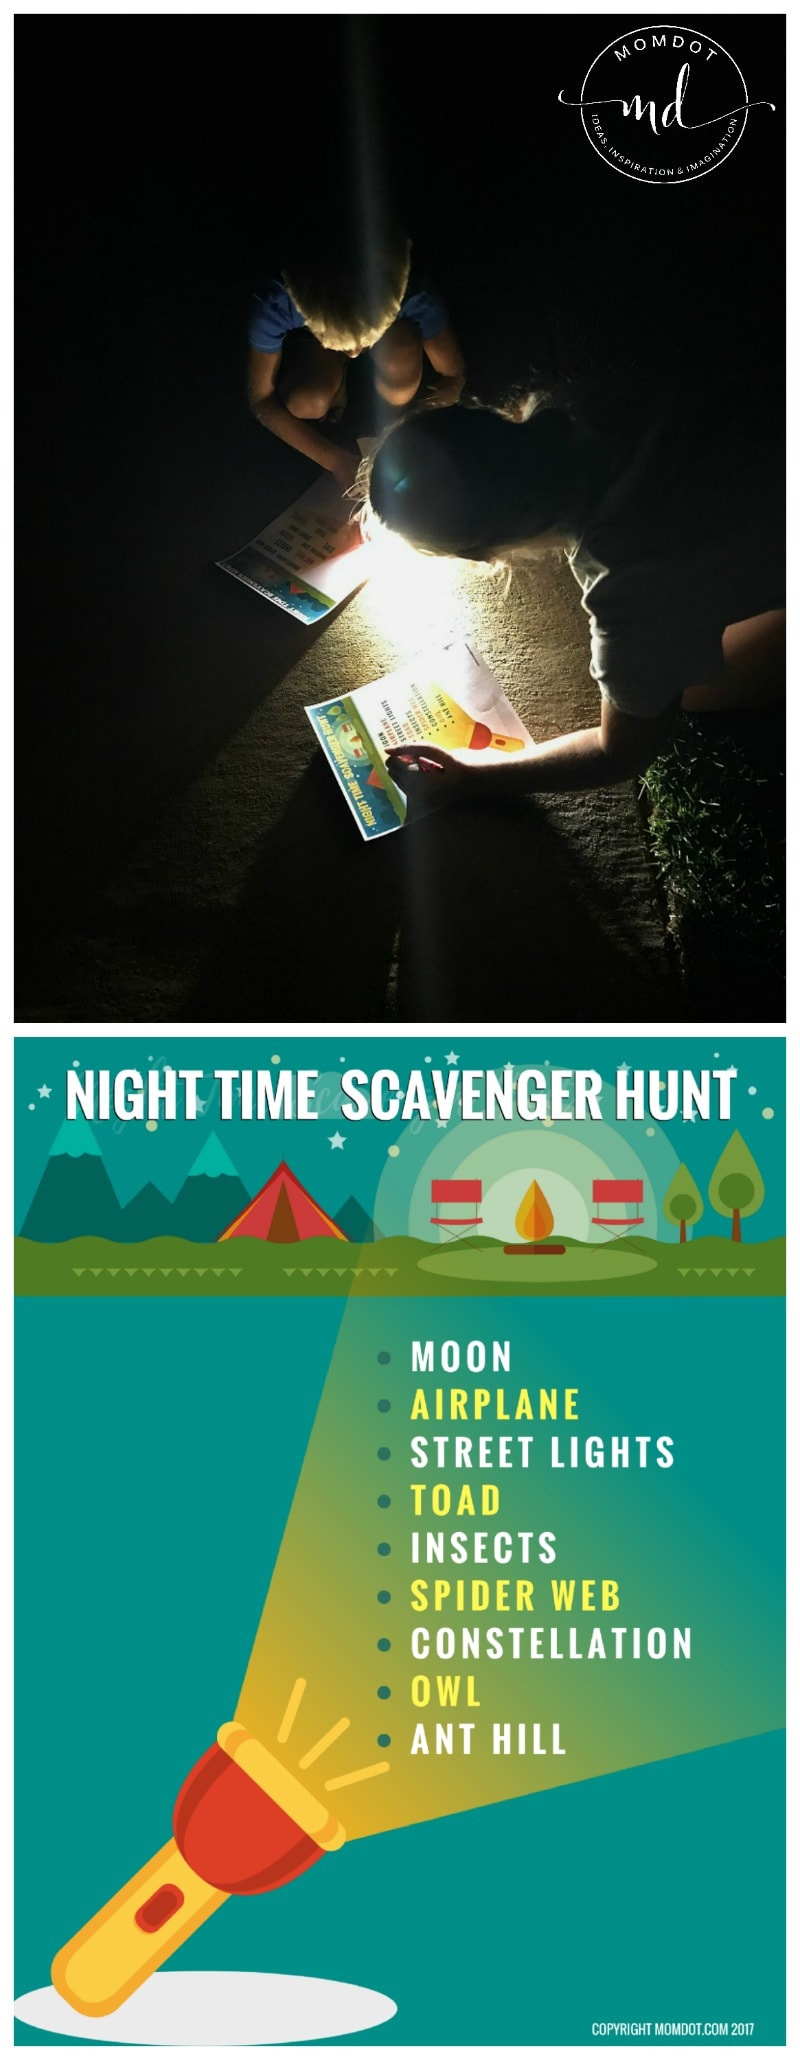 Flashlight Scavenger Hunt | Free Printable | After Dark Scavenger Hunt